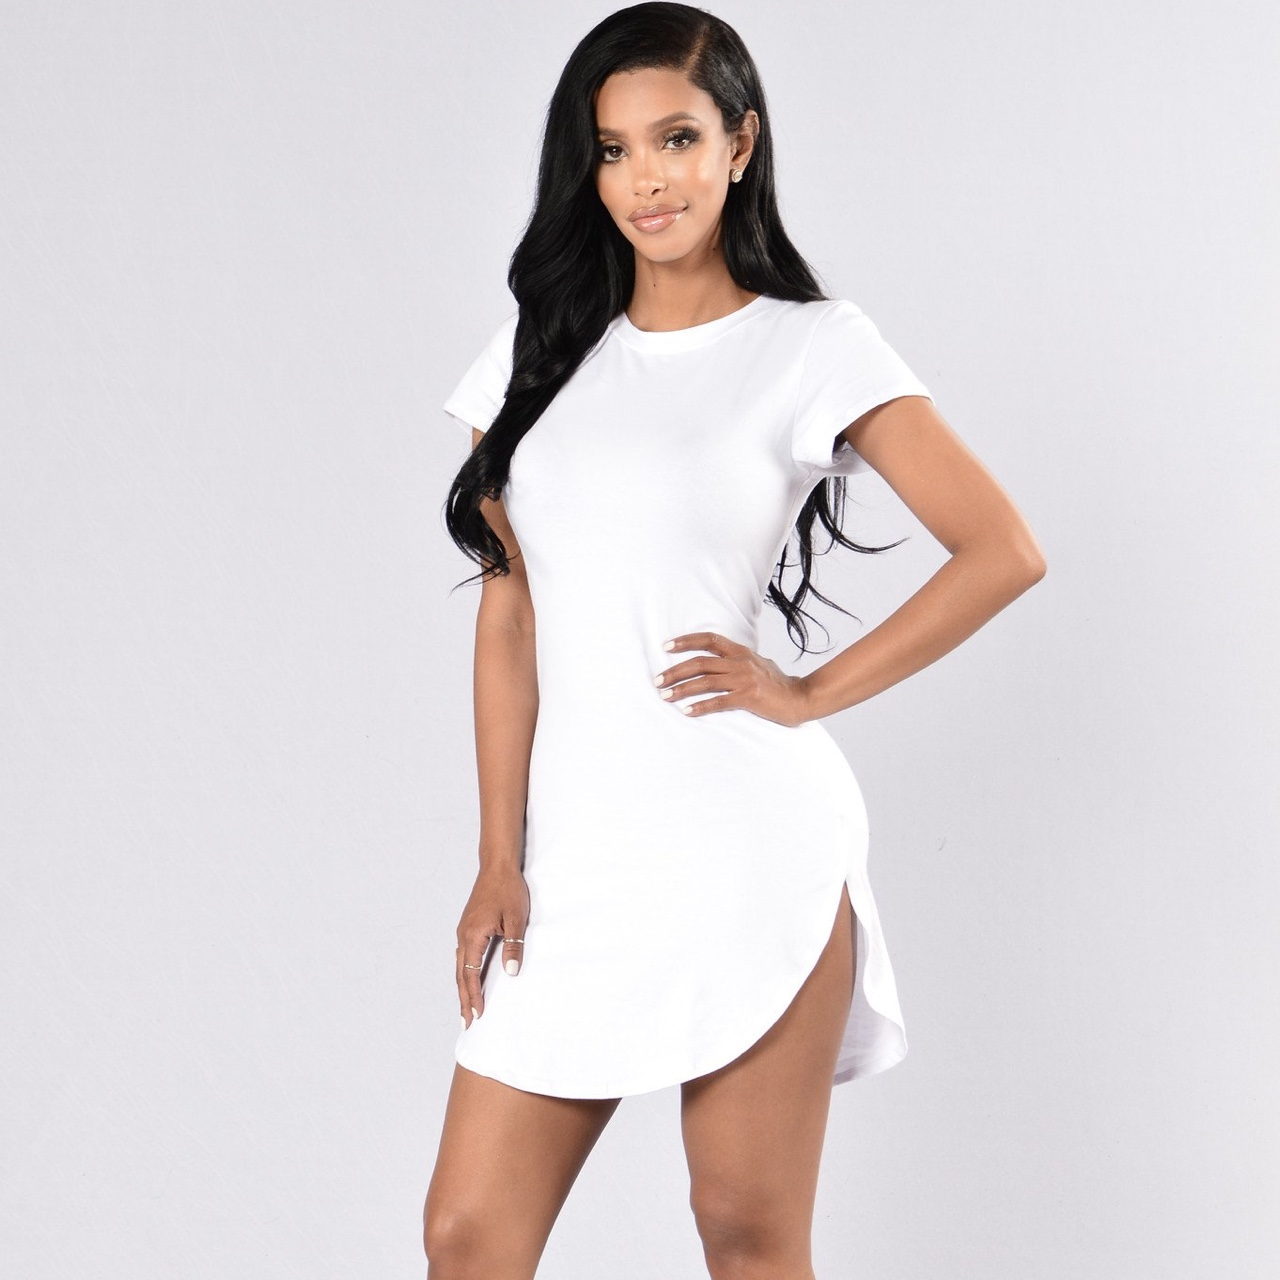 Fashion Nova White T Shirt Dress In Size M 8 12 Depop Sell collections for women, men, curves, and kids to millions of consumers around the world. fashion nova white t shirt dress in size m 8 12